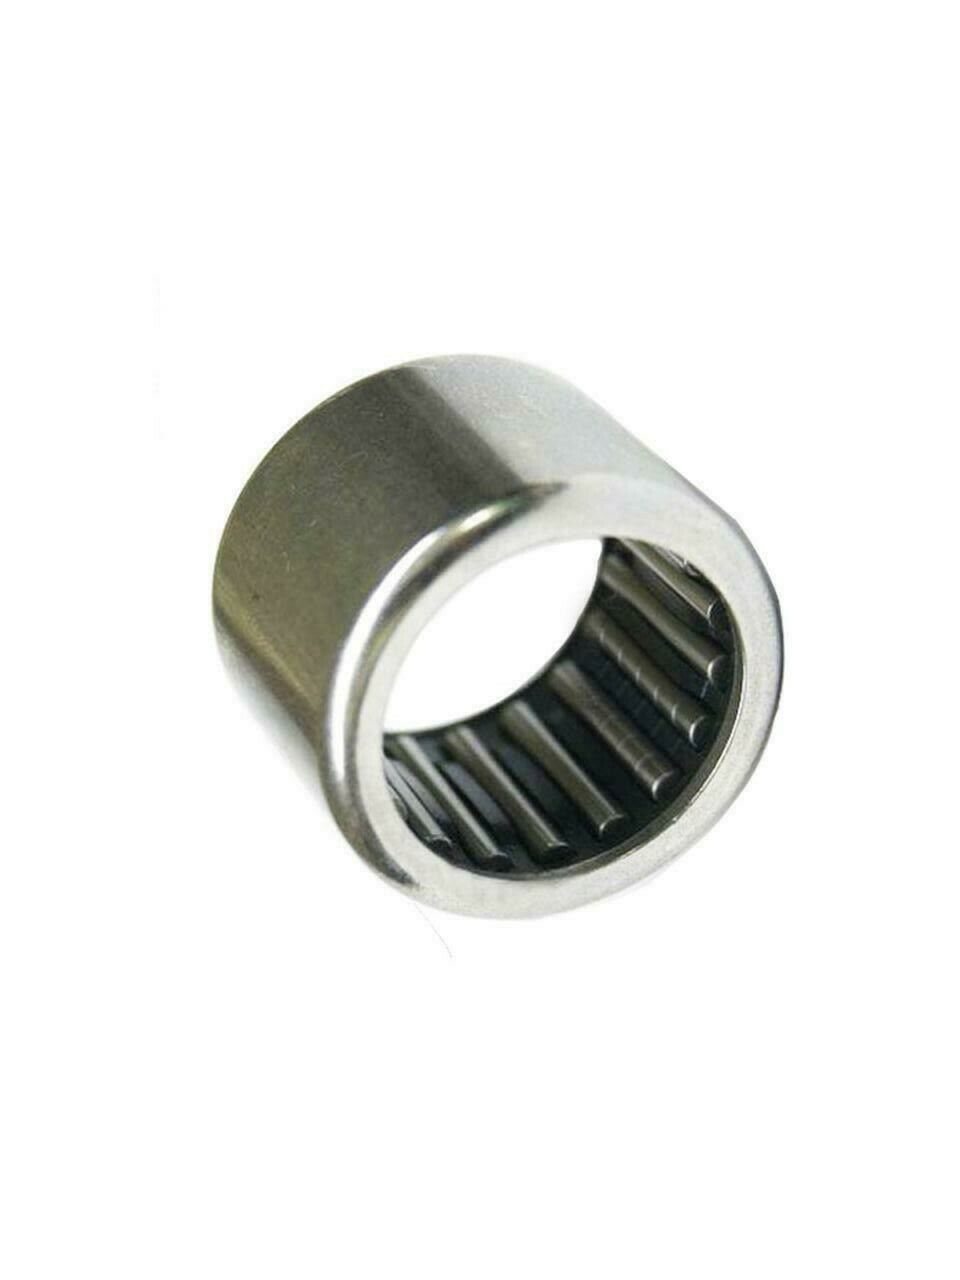 Replaces Part Number TGT0493 Shimano One-Way Roller Clutch Bearing